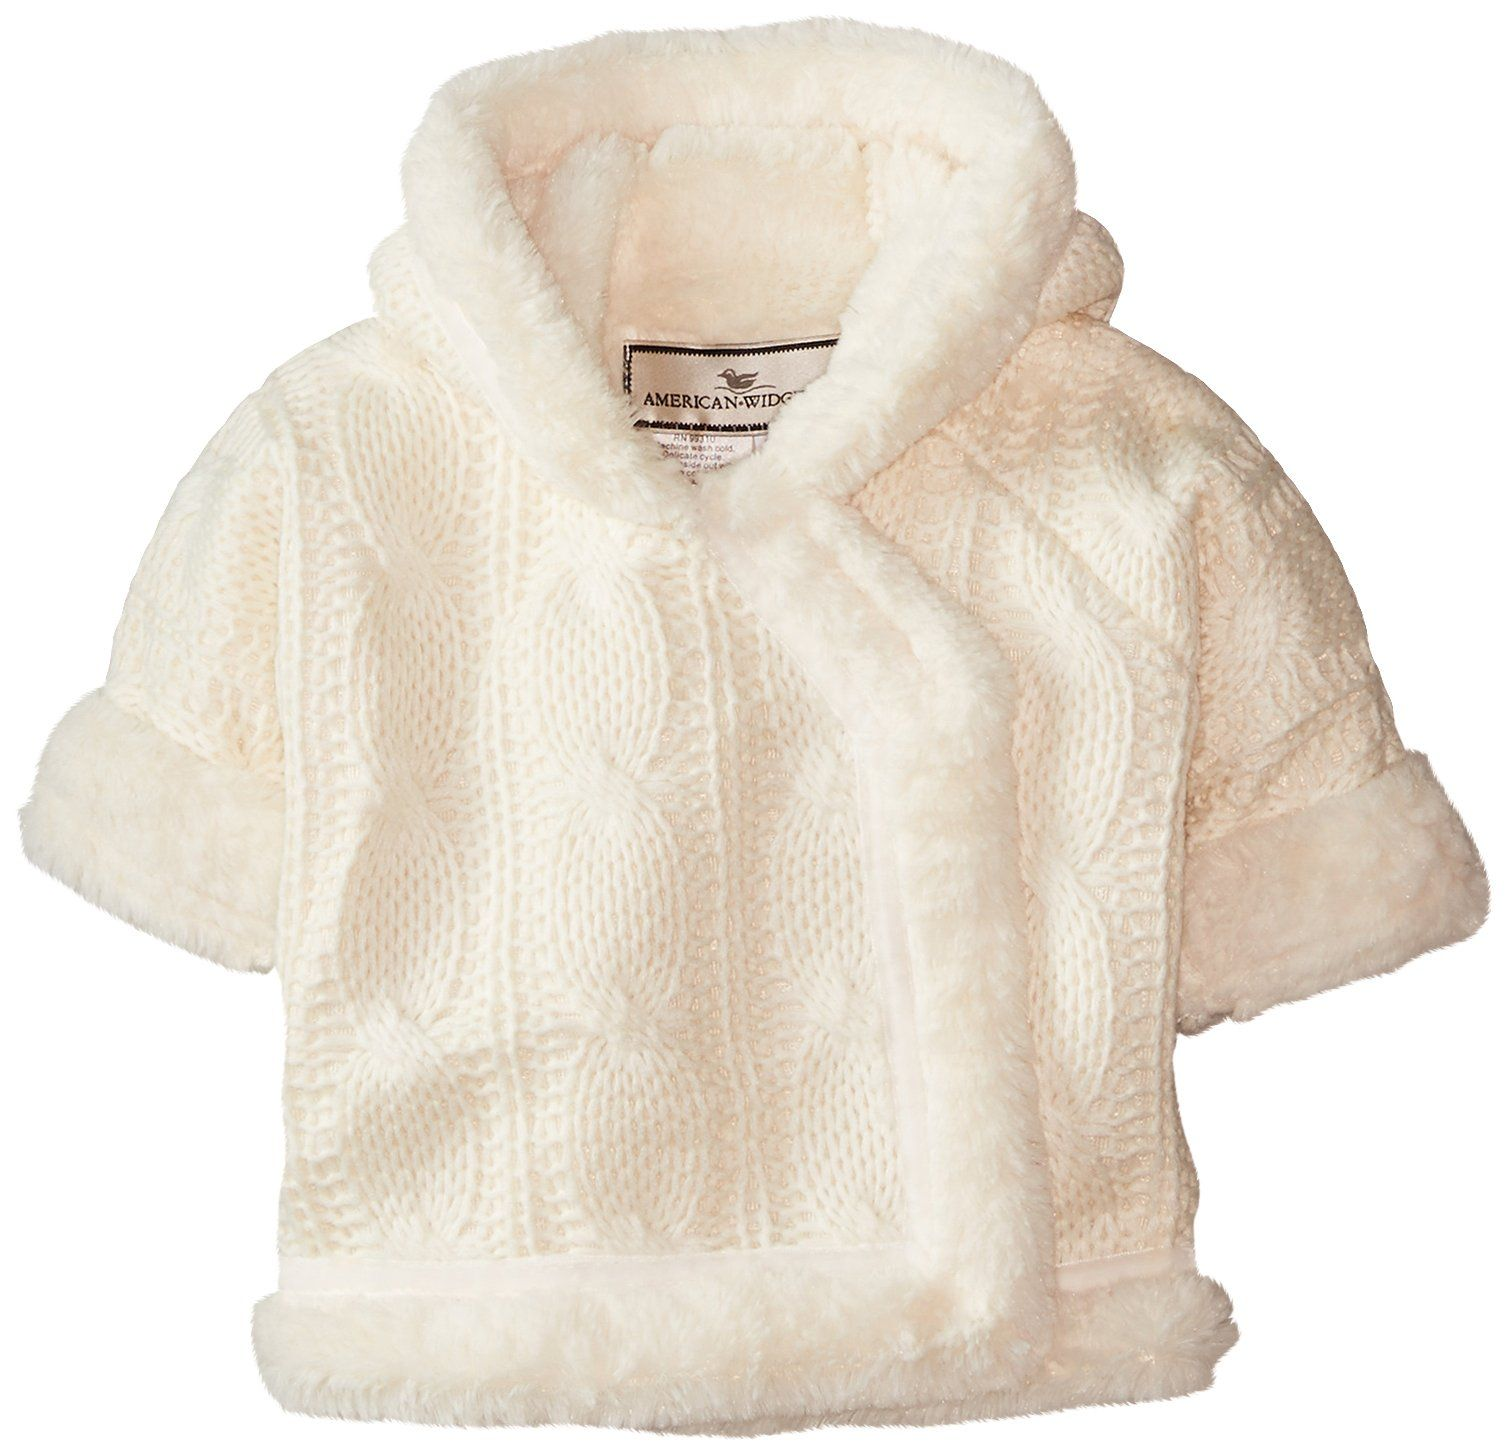 Widgeon Baby Girls' Hooded Faux Furry Sweater Jacket, Cable Knit Ivory, 3 Months. Bonded sweater and super soft faux-fur. Easy velcro close. Machine washable. A true wow piece.